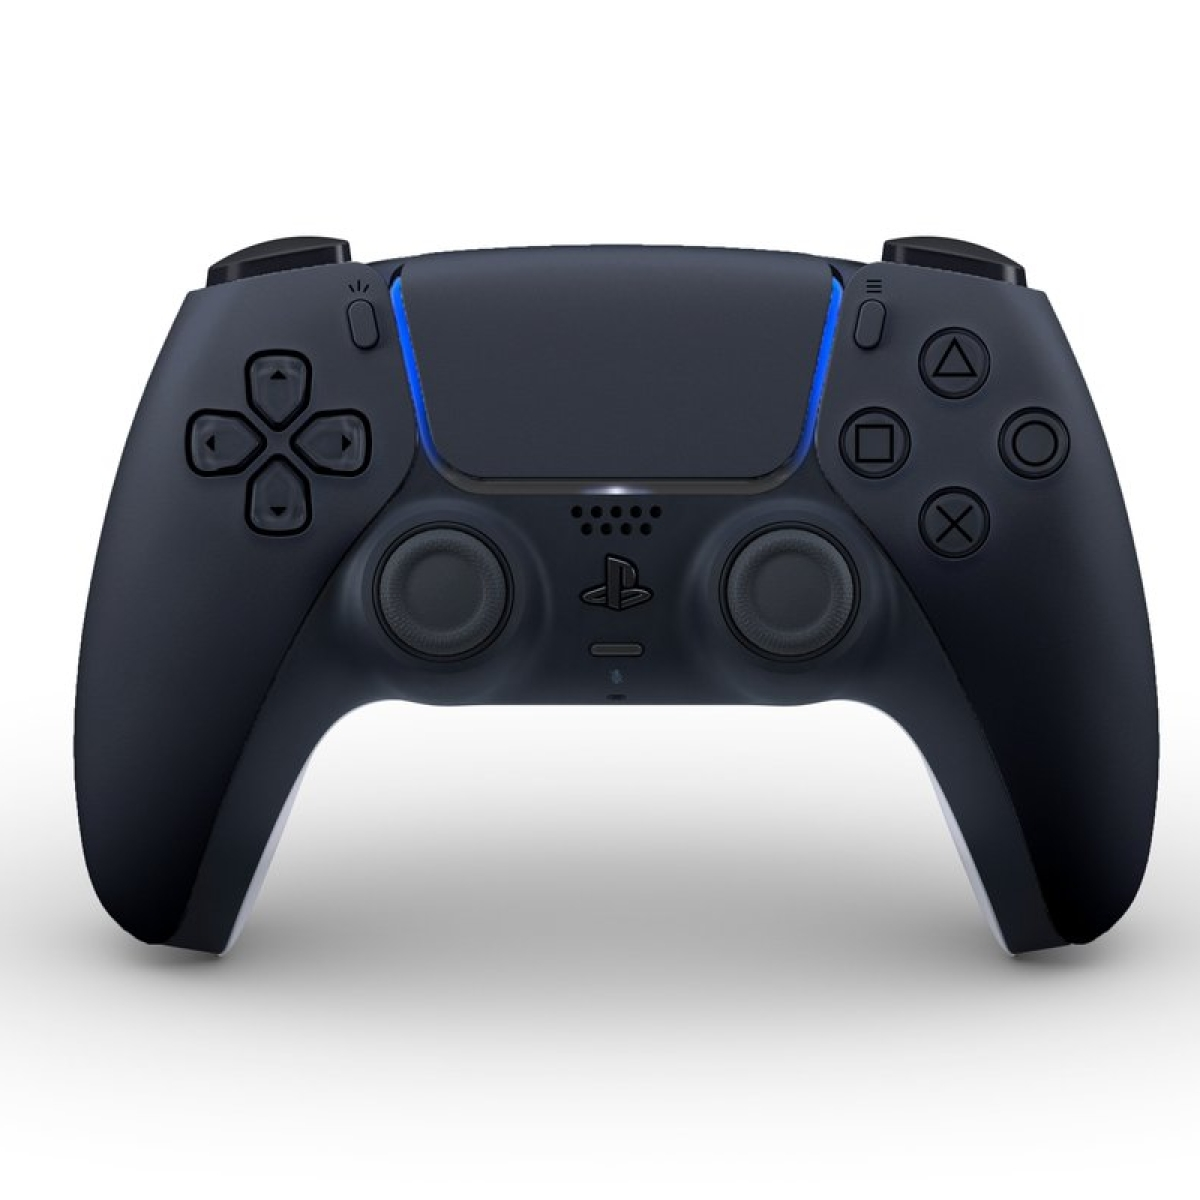 Sony unveils new PlayStation 5 controller